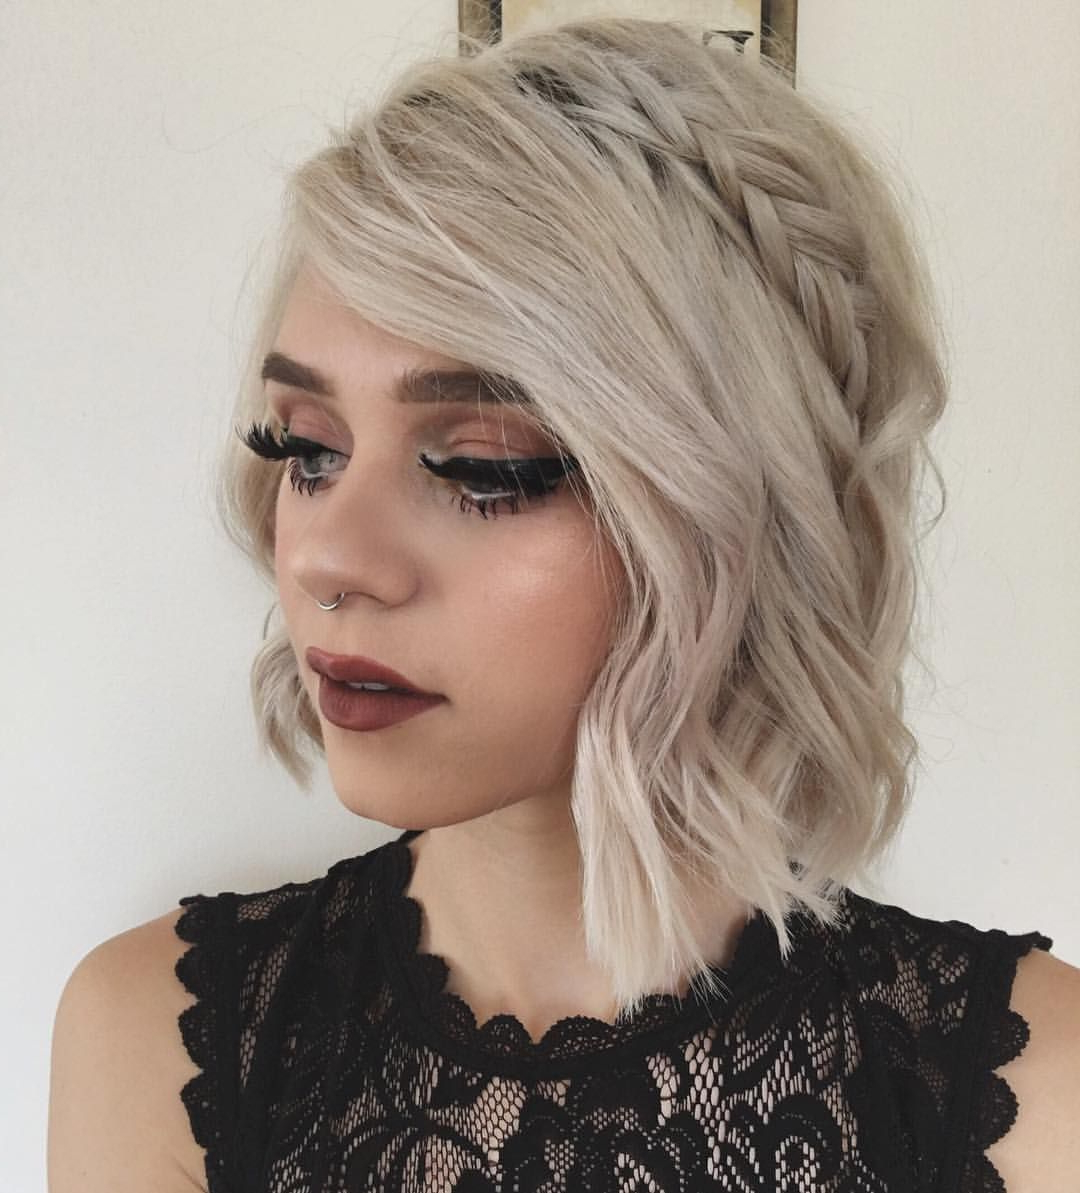 Pinlily Ritter On Beauty In 2018 | Pinterest | Hair, Short Hair For Cute Hairstyles For Short Hair For Homecoming (View 23 of 25)